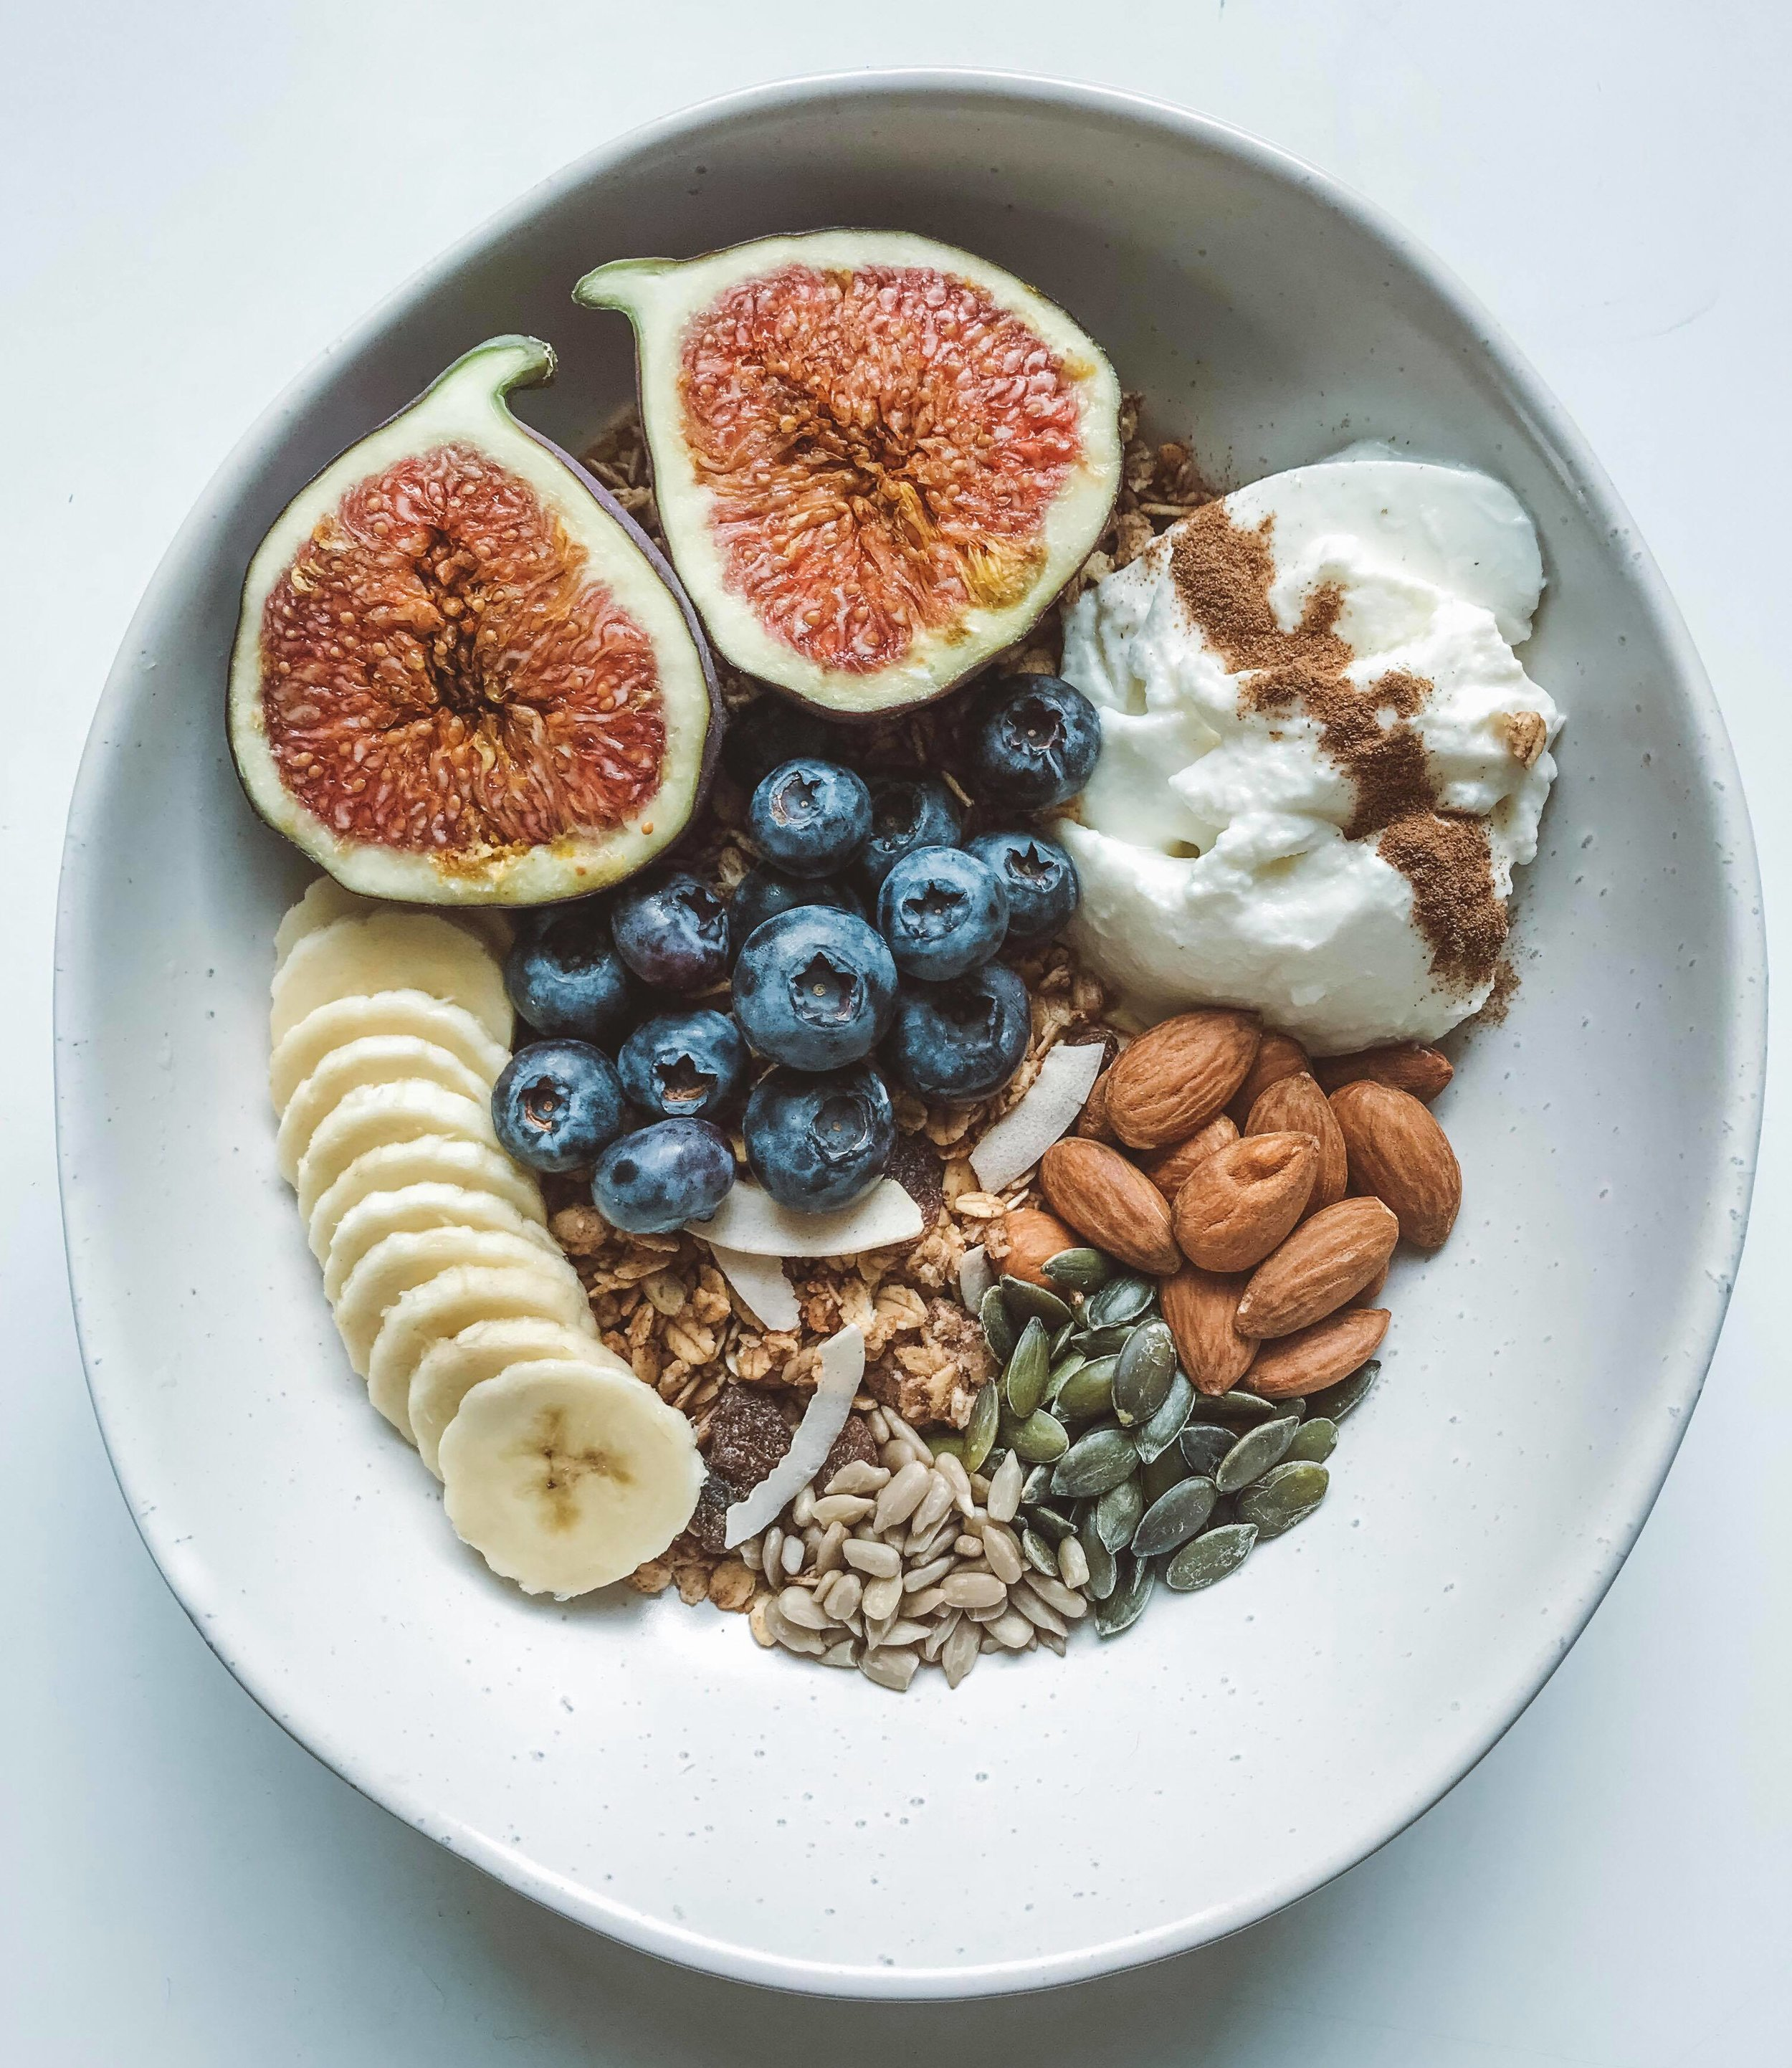 Breakfast, one day in London, getting all fAnCy for the gram. Deliciously Ella granola, fruit, yoghurt, nuts and seeds.